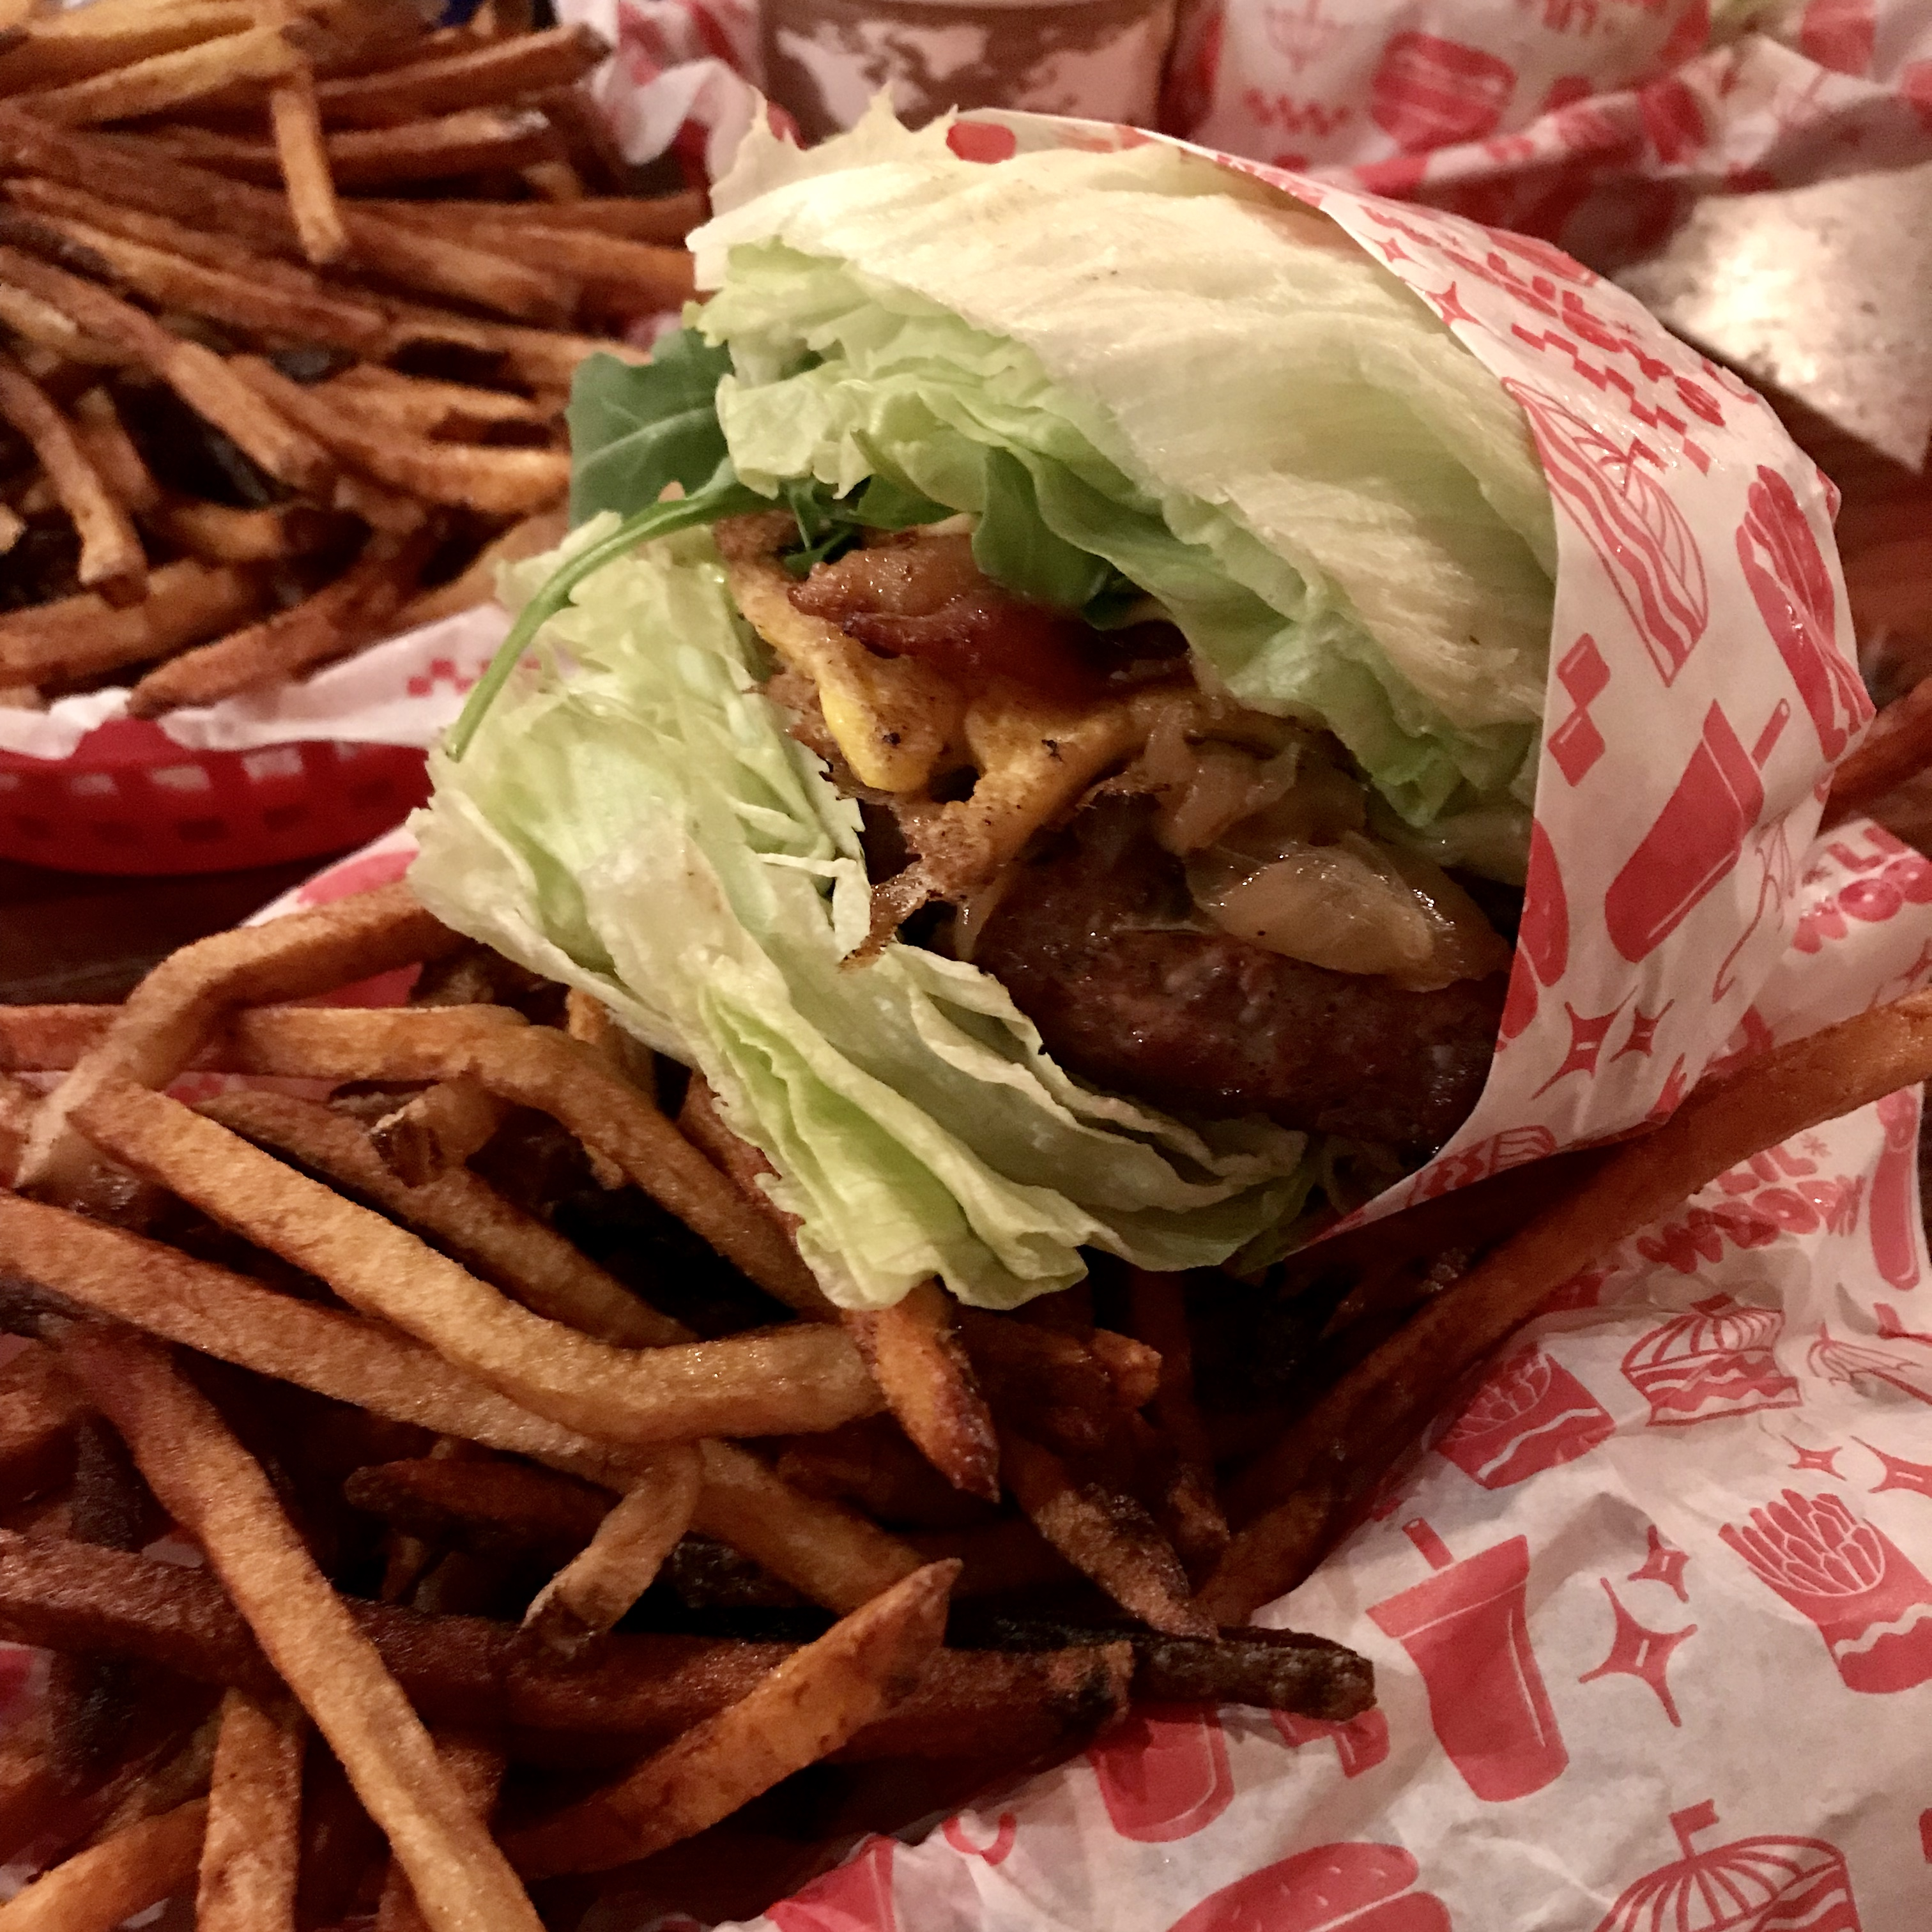 a lettuce wrap grass-fed burger with french fries at lil woodys